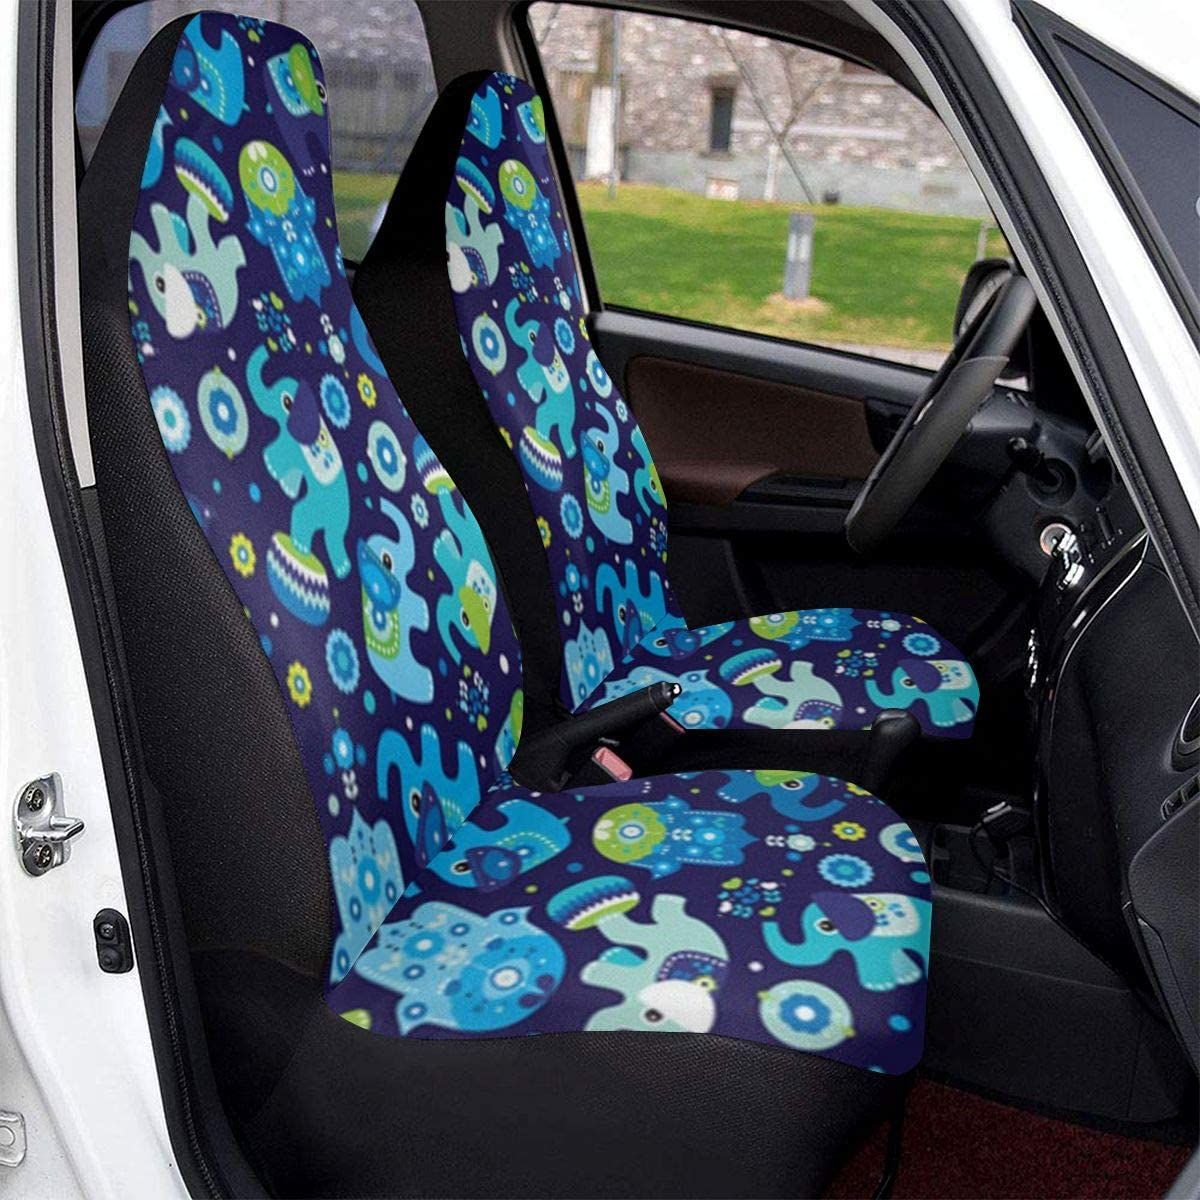 PFENK Car Seat Covers Bears Pattern Protector Cushion Premium Cover for Women Men Girls Boys Fits Most Cars Truck SUV Van